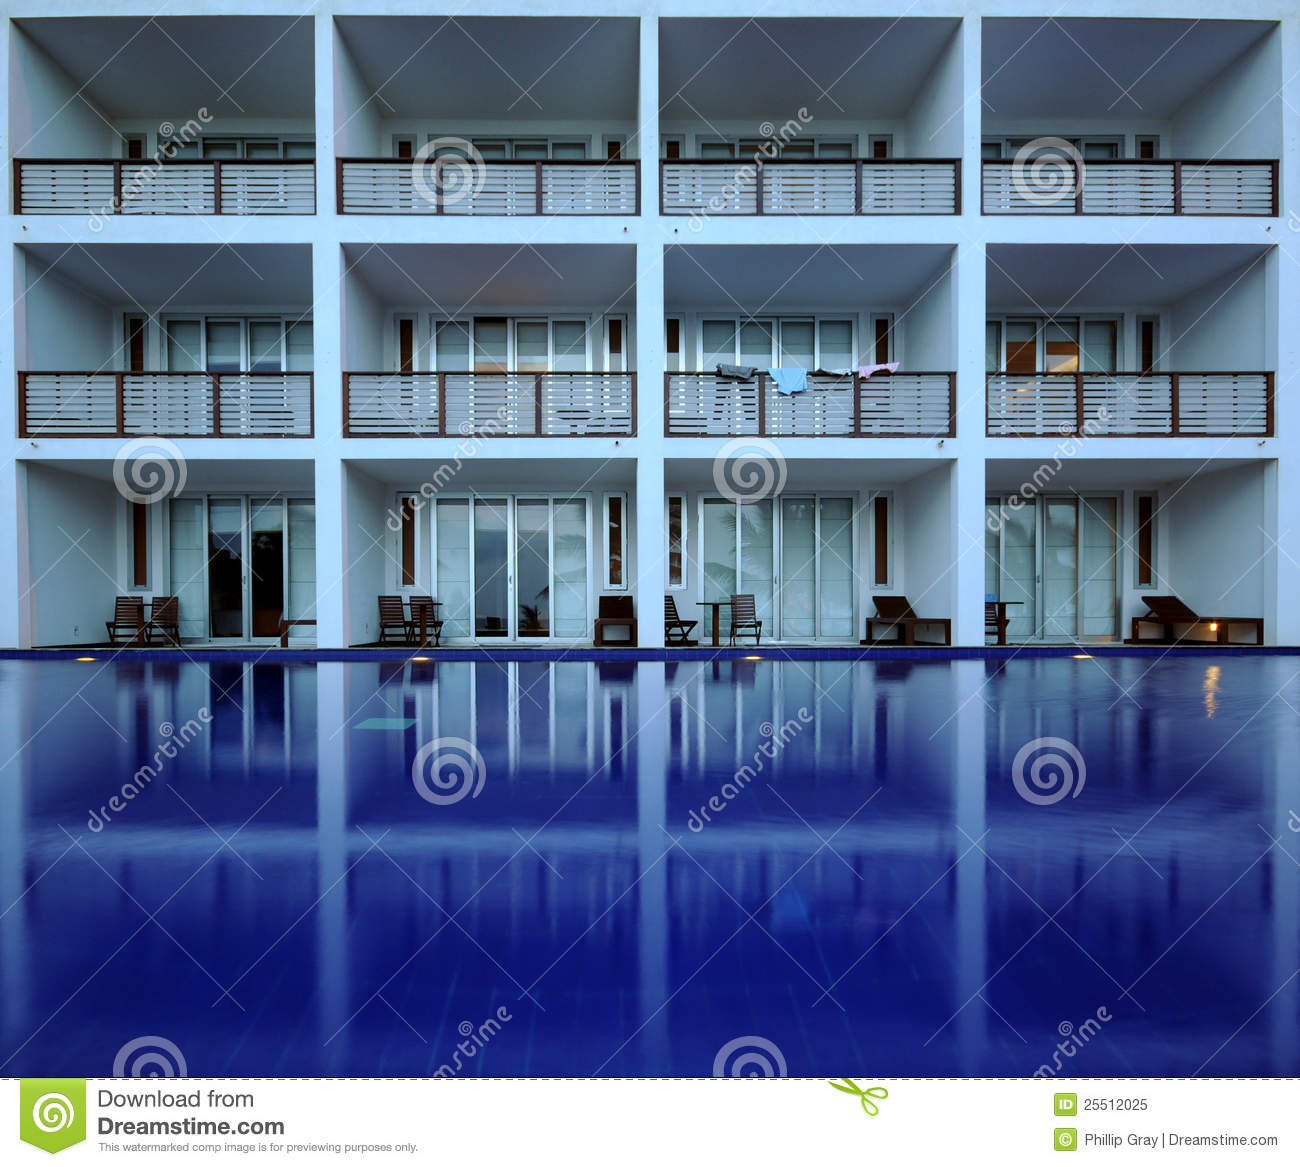 Hotel pool balcony royalty free stock photo image 25512025 for Hotel balcony